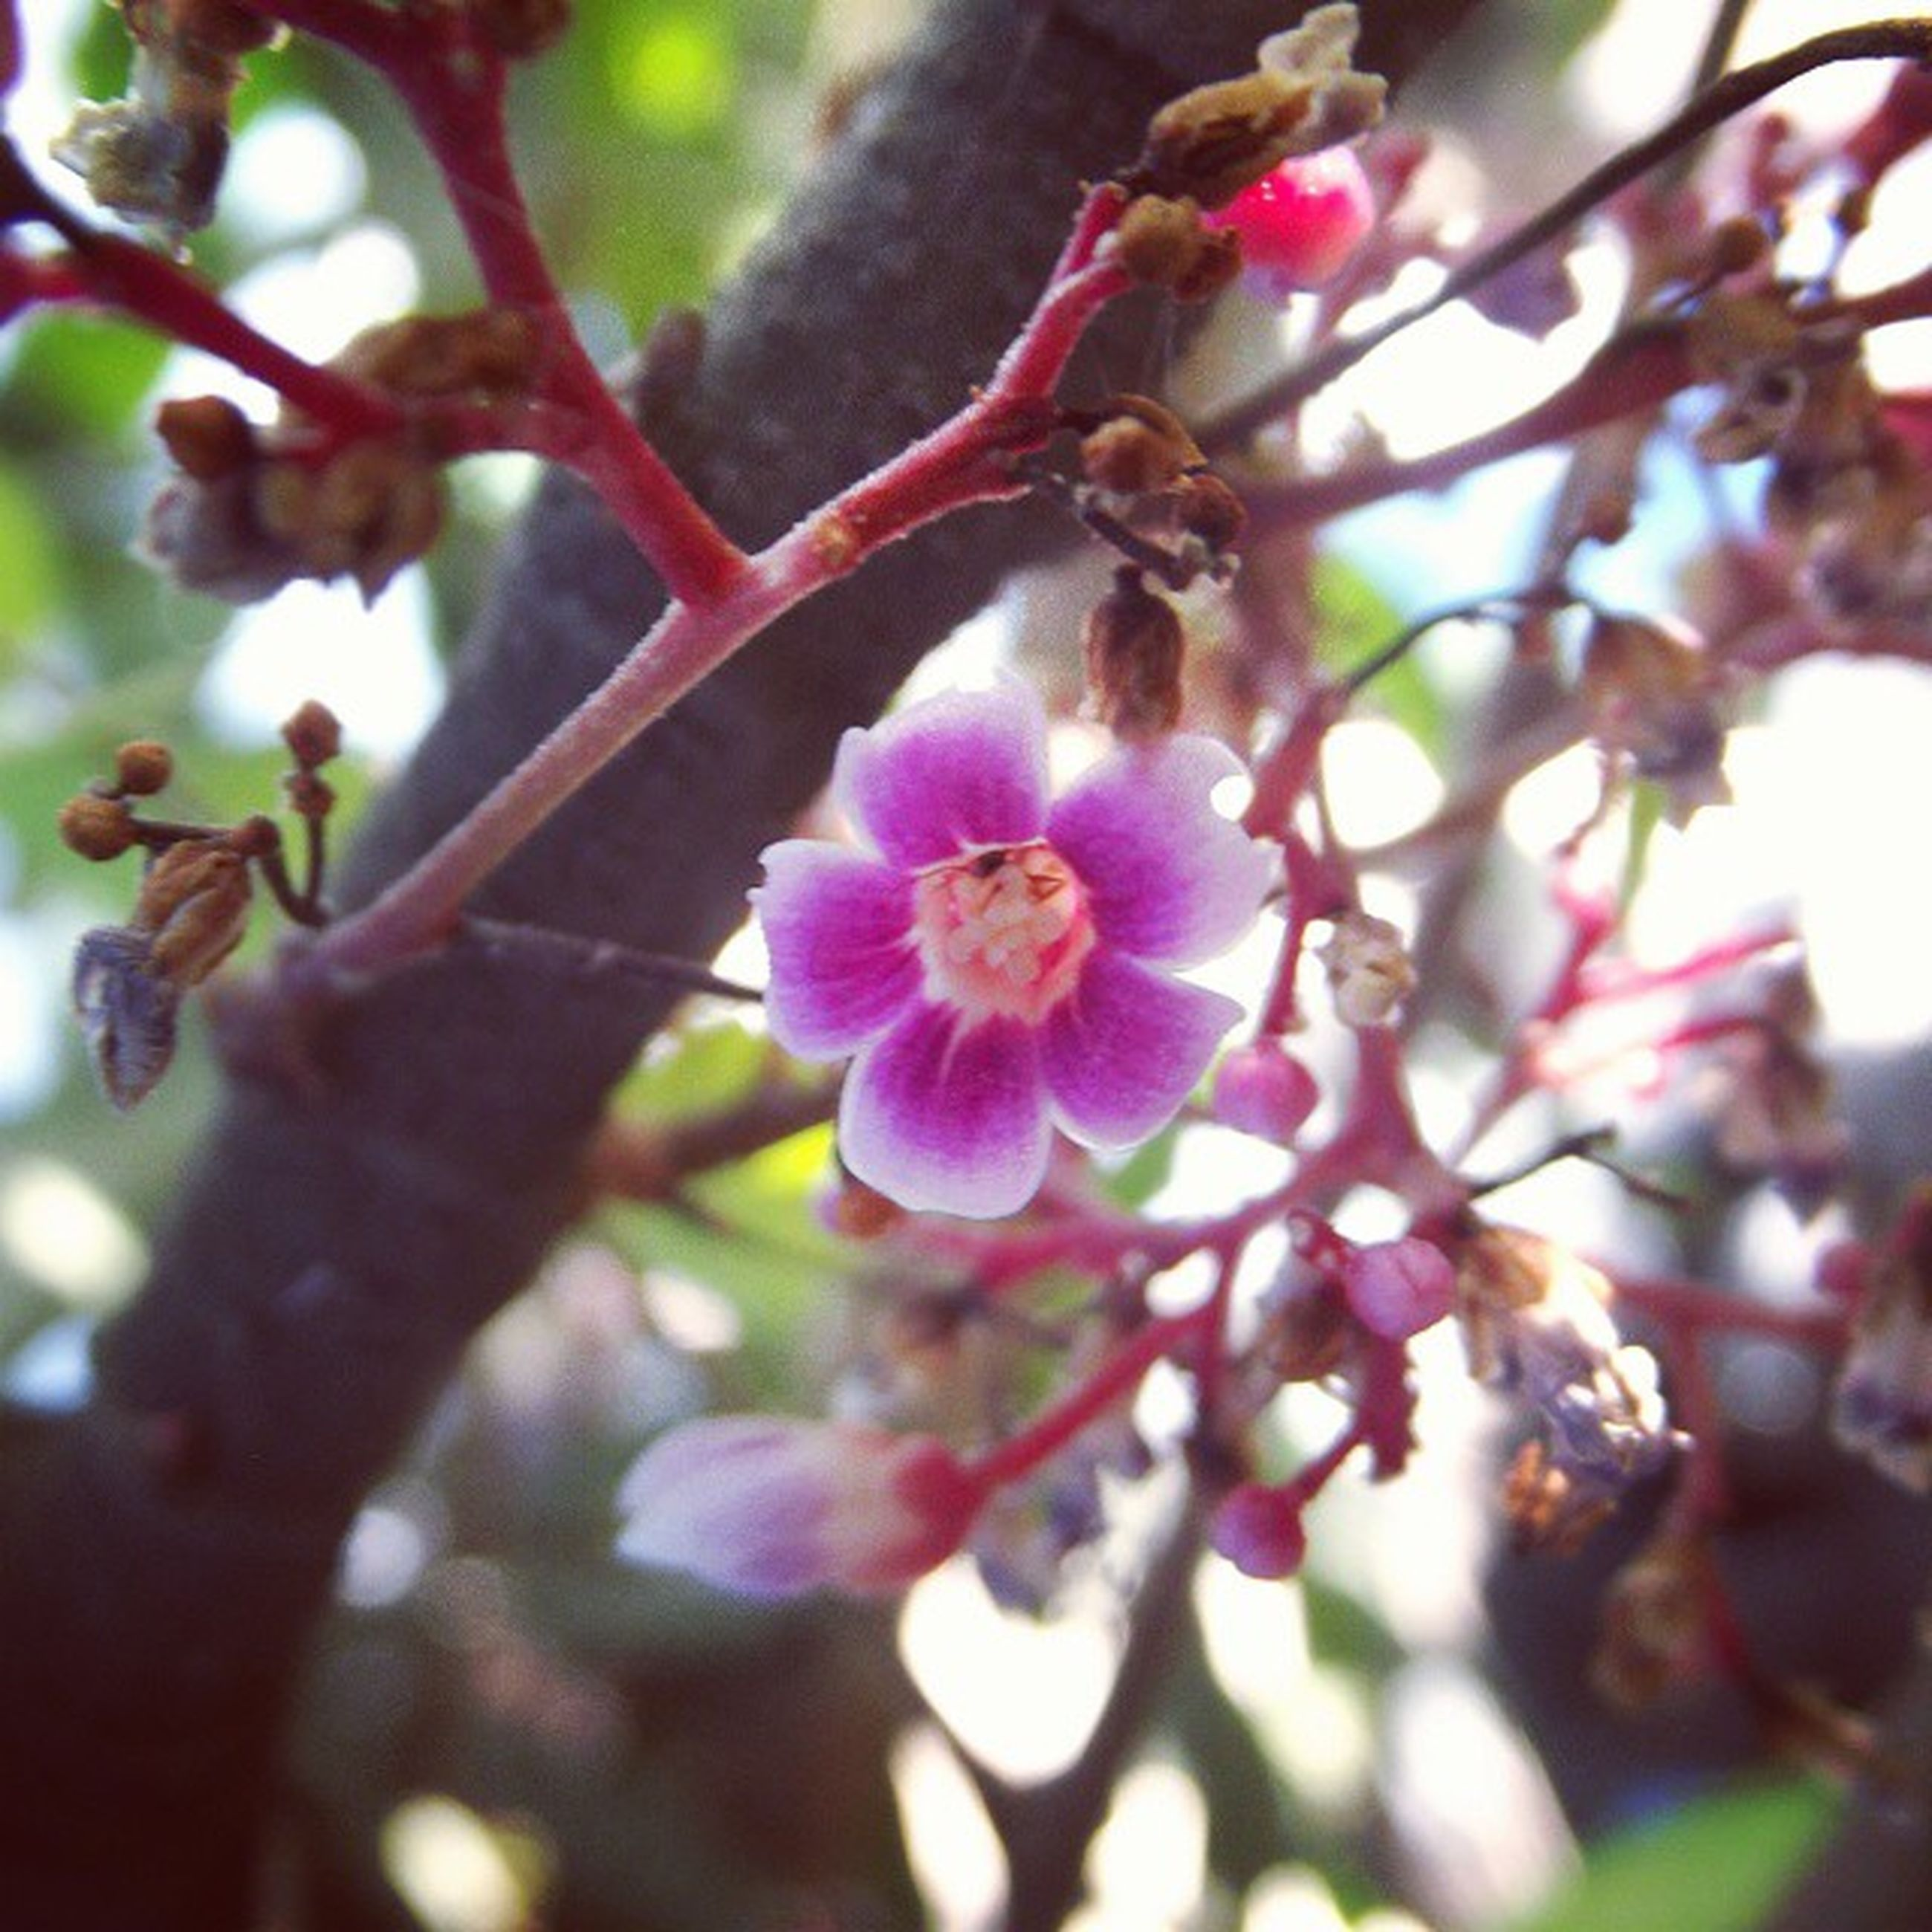 flower, freshness, branch, growth, fragility, tree, beauty in nature, focus on foreground, nature, close-up, petal, blossom, cherry blossom, low angle view, in bloom, springtime, blooming, twig, selective focus, cherry tree